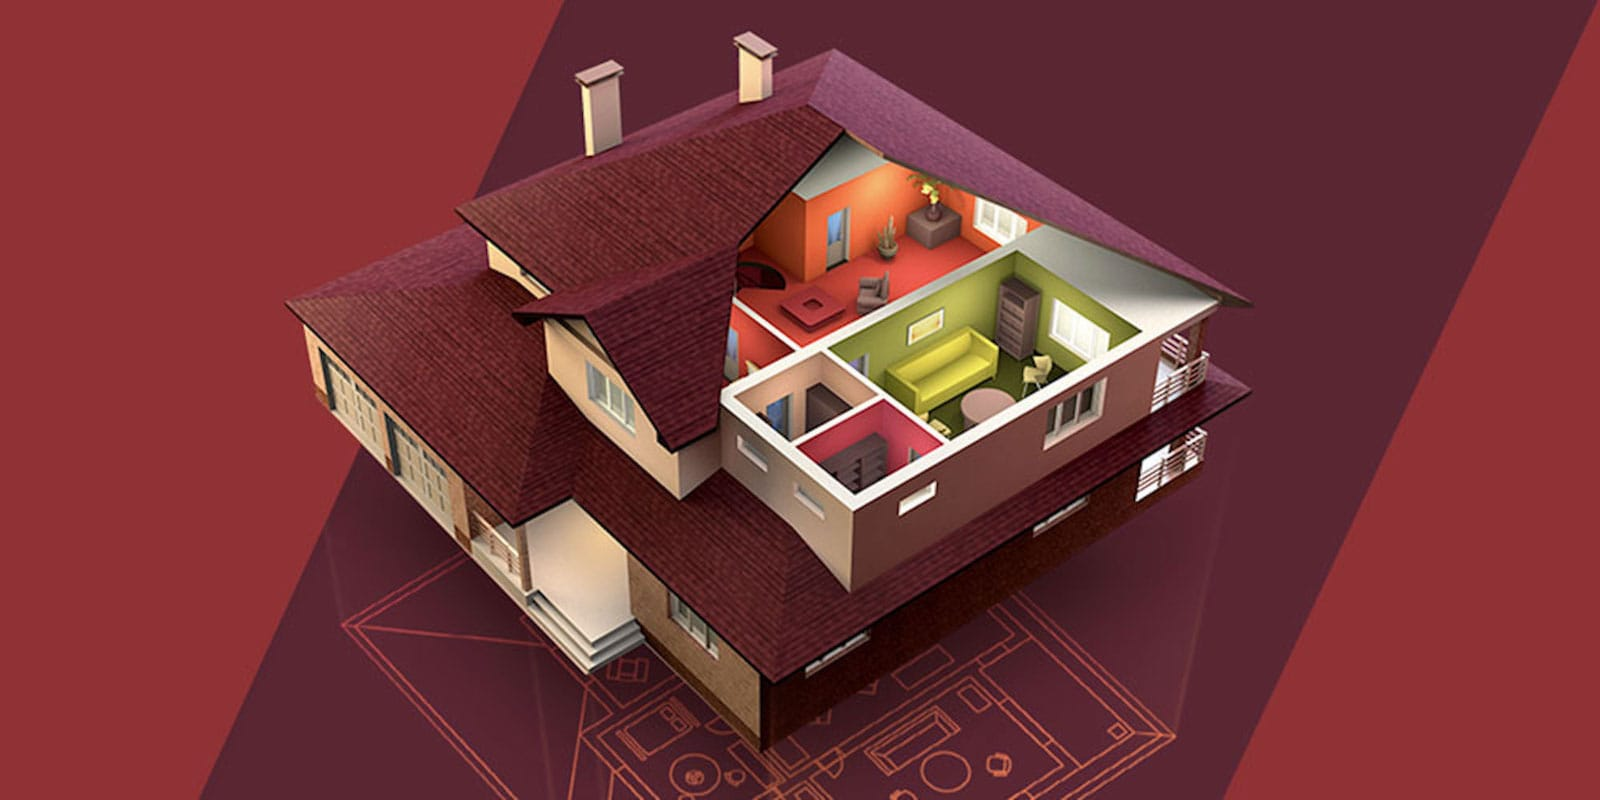 Turn home decoration into an immersive, creative experience with this 3D previsualization app.